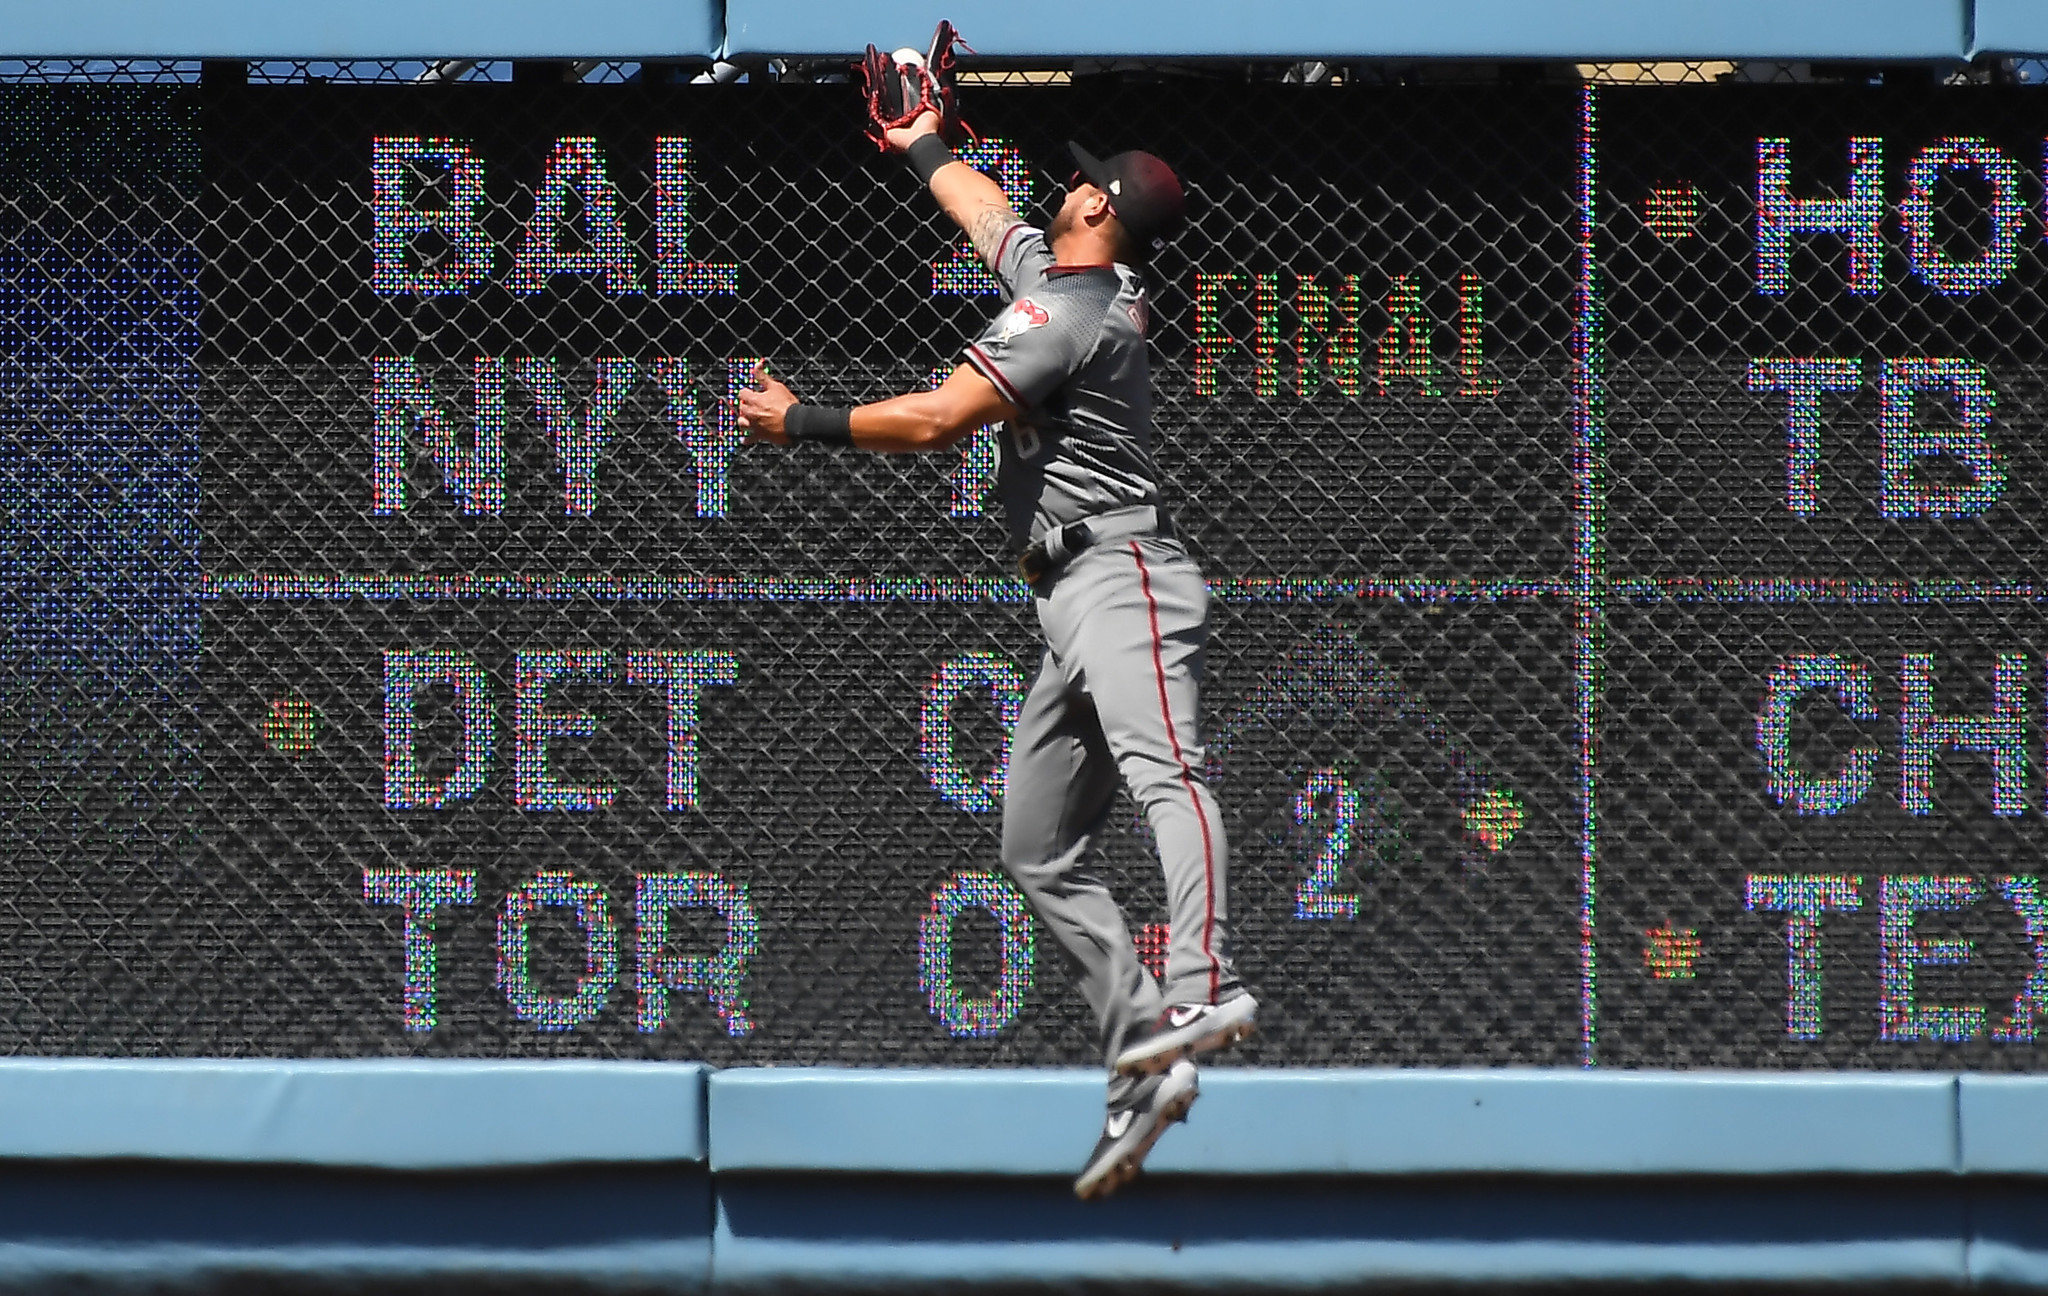 LOS ANGELES, CALIFORNIA MARCH 25, 2019-Diamondbacks left fielder David Peralta leaps but can't make